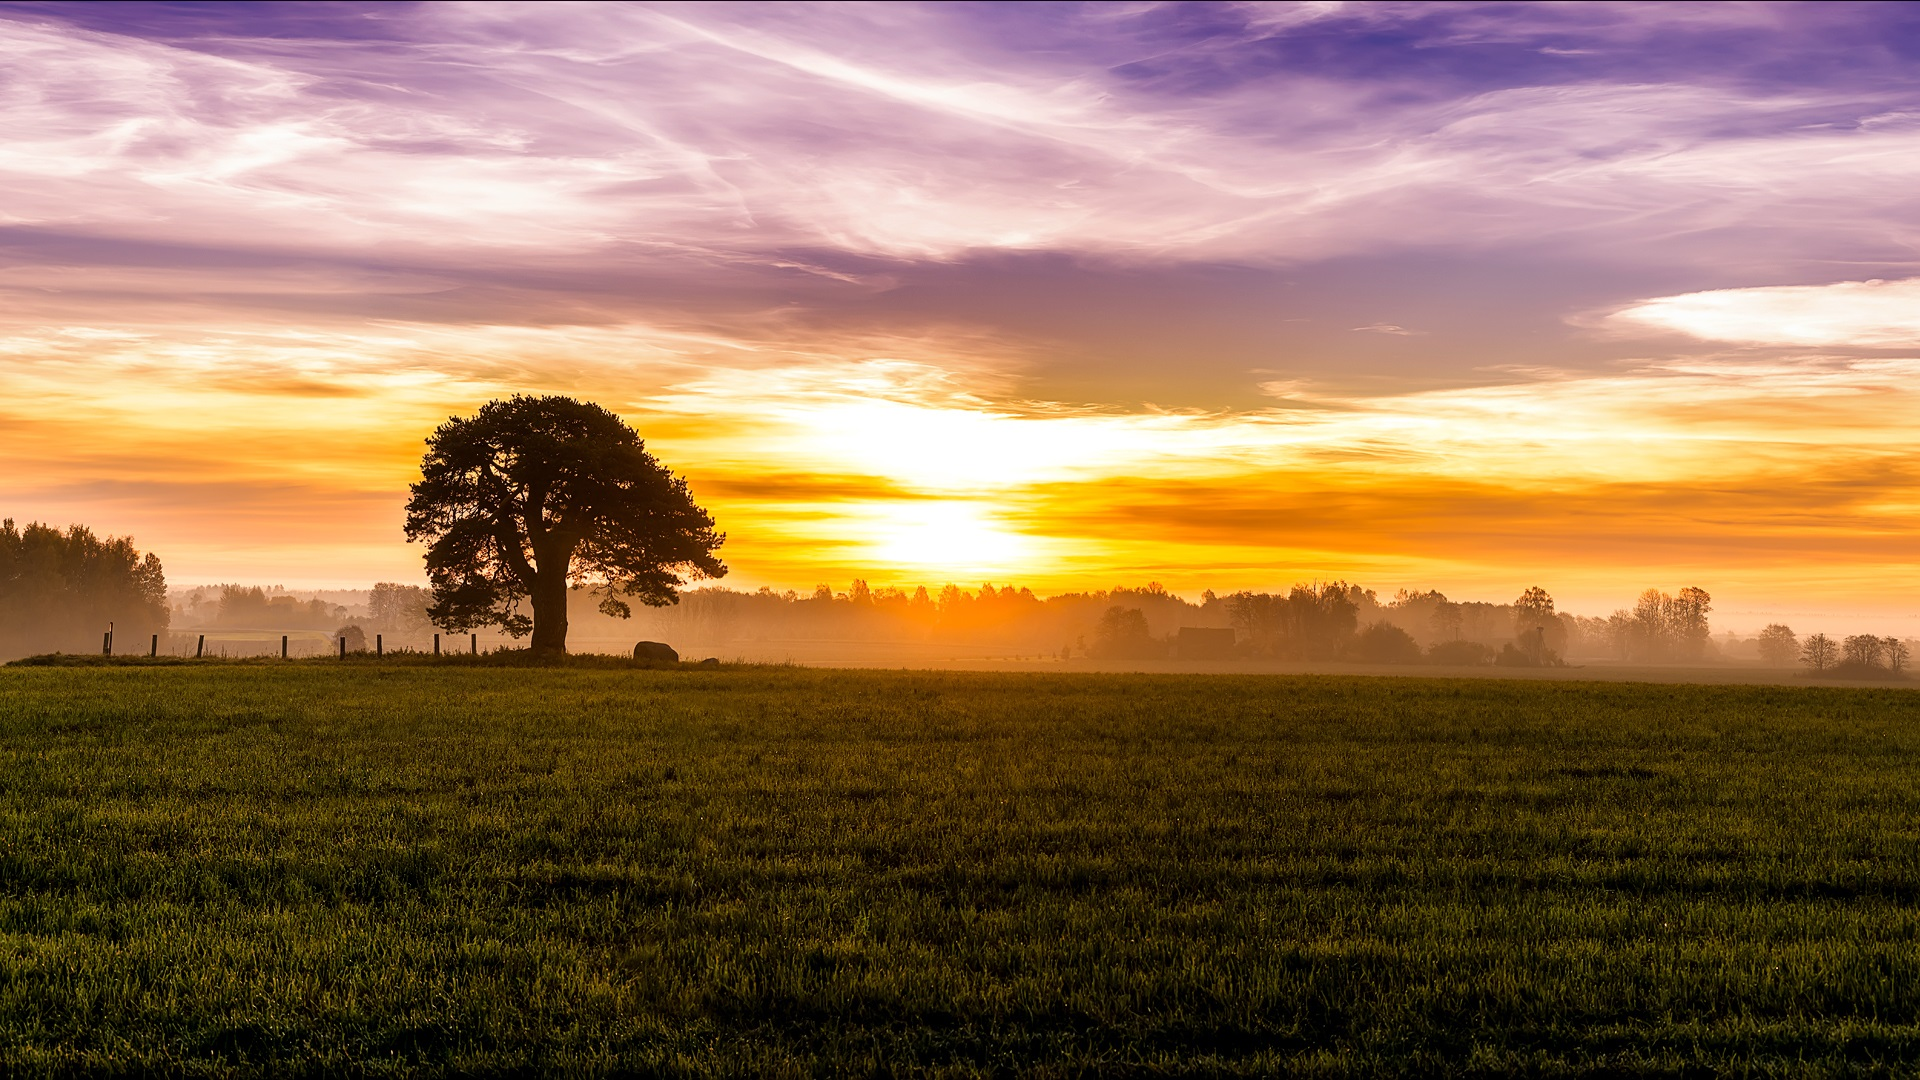 Cute Wallpapers For Girls In The Fall Morning Dawn Fog Sunrise Sky Clouds Fields Meadow